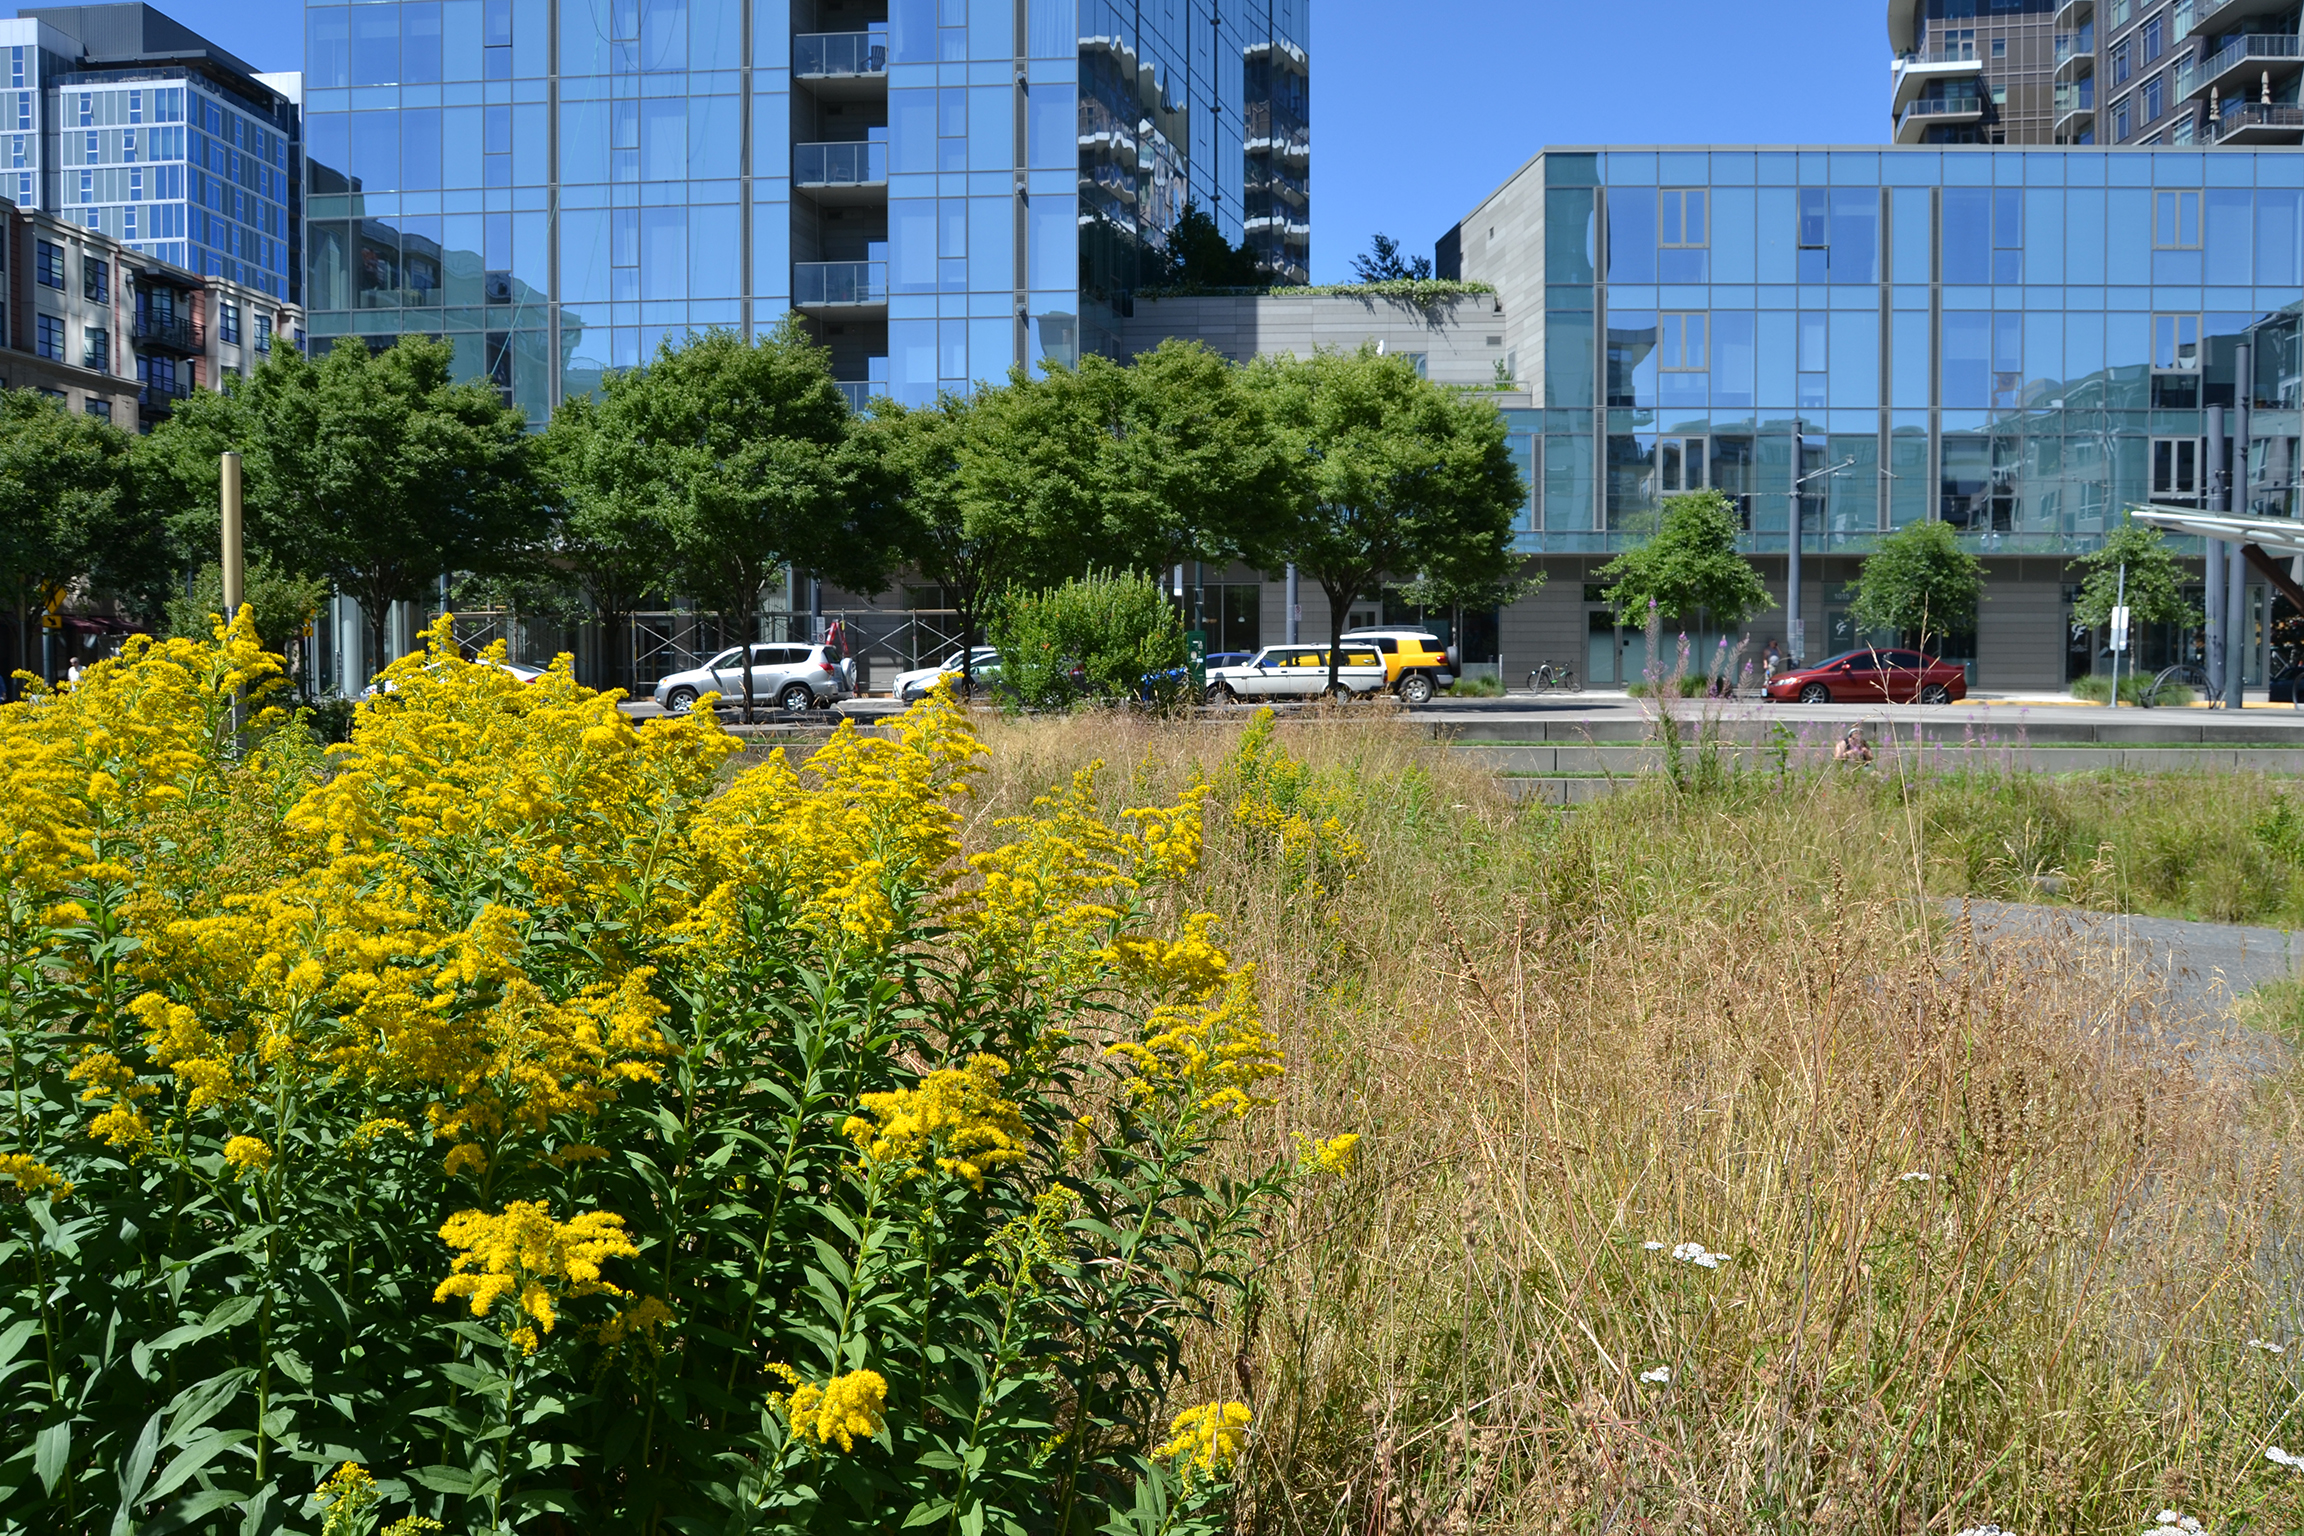 Native wildflowers bloom among office buildings